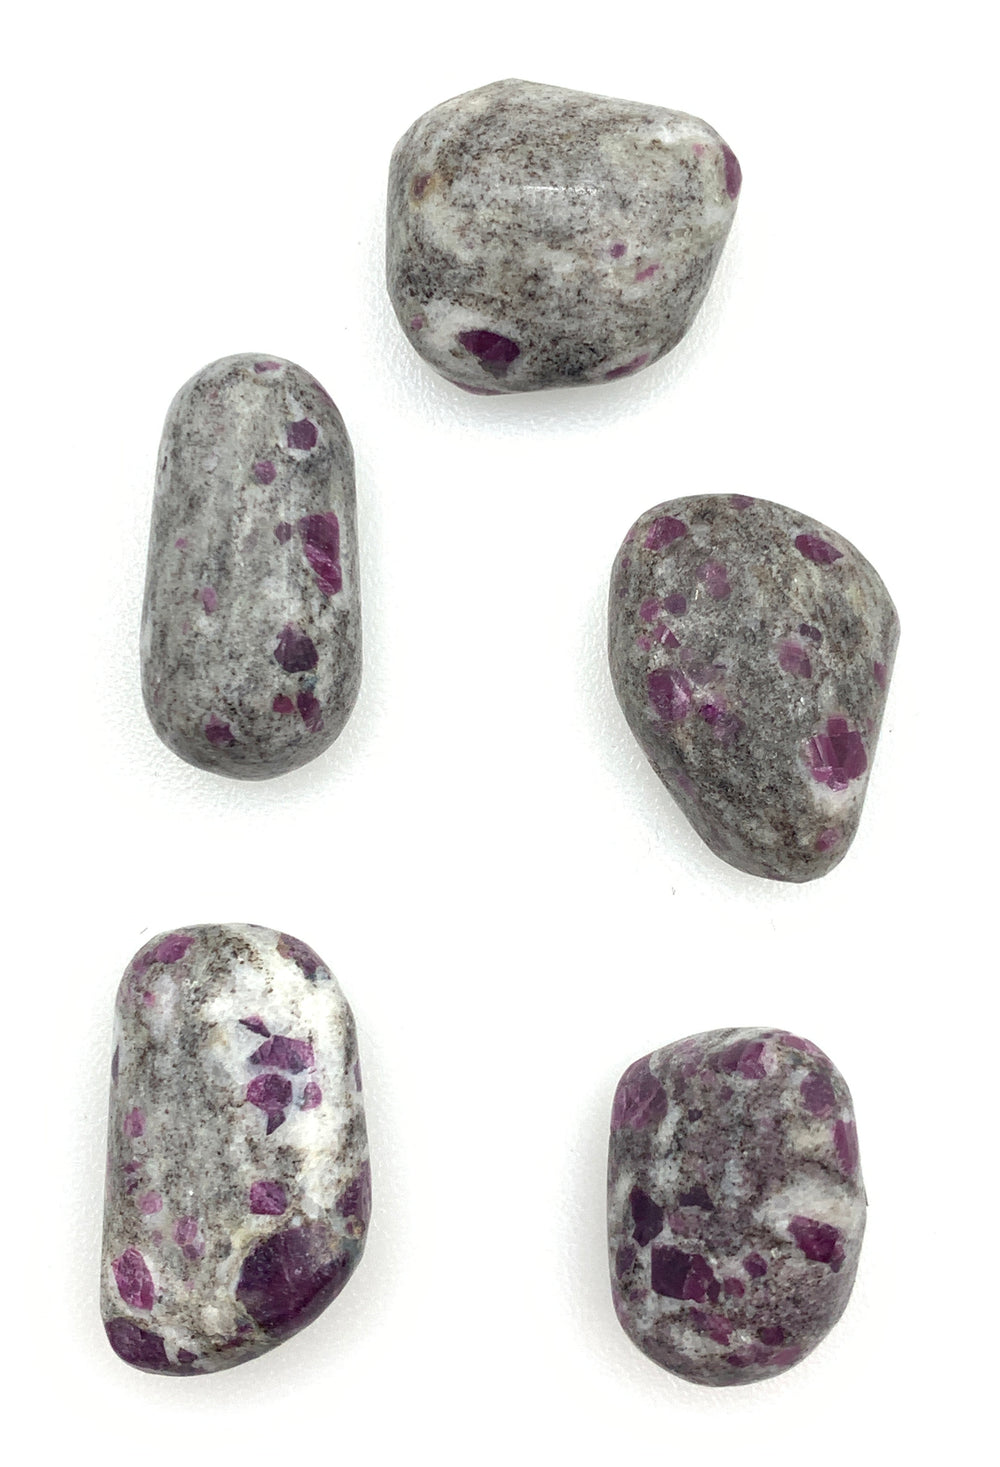 Ruby In Matrix (1) Tumbled Stone